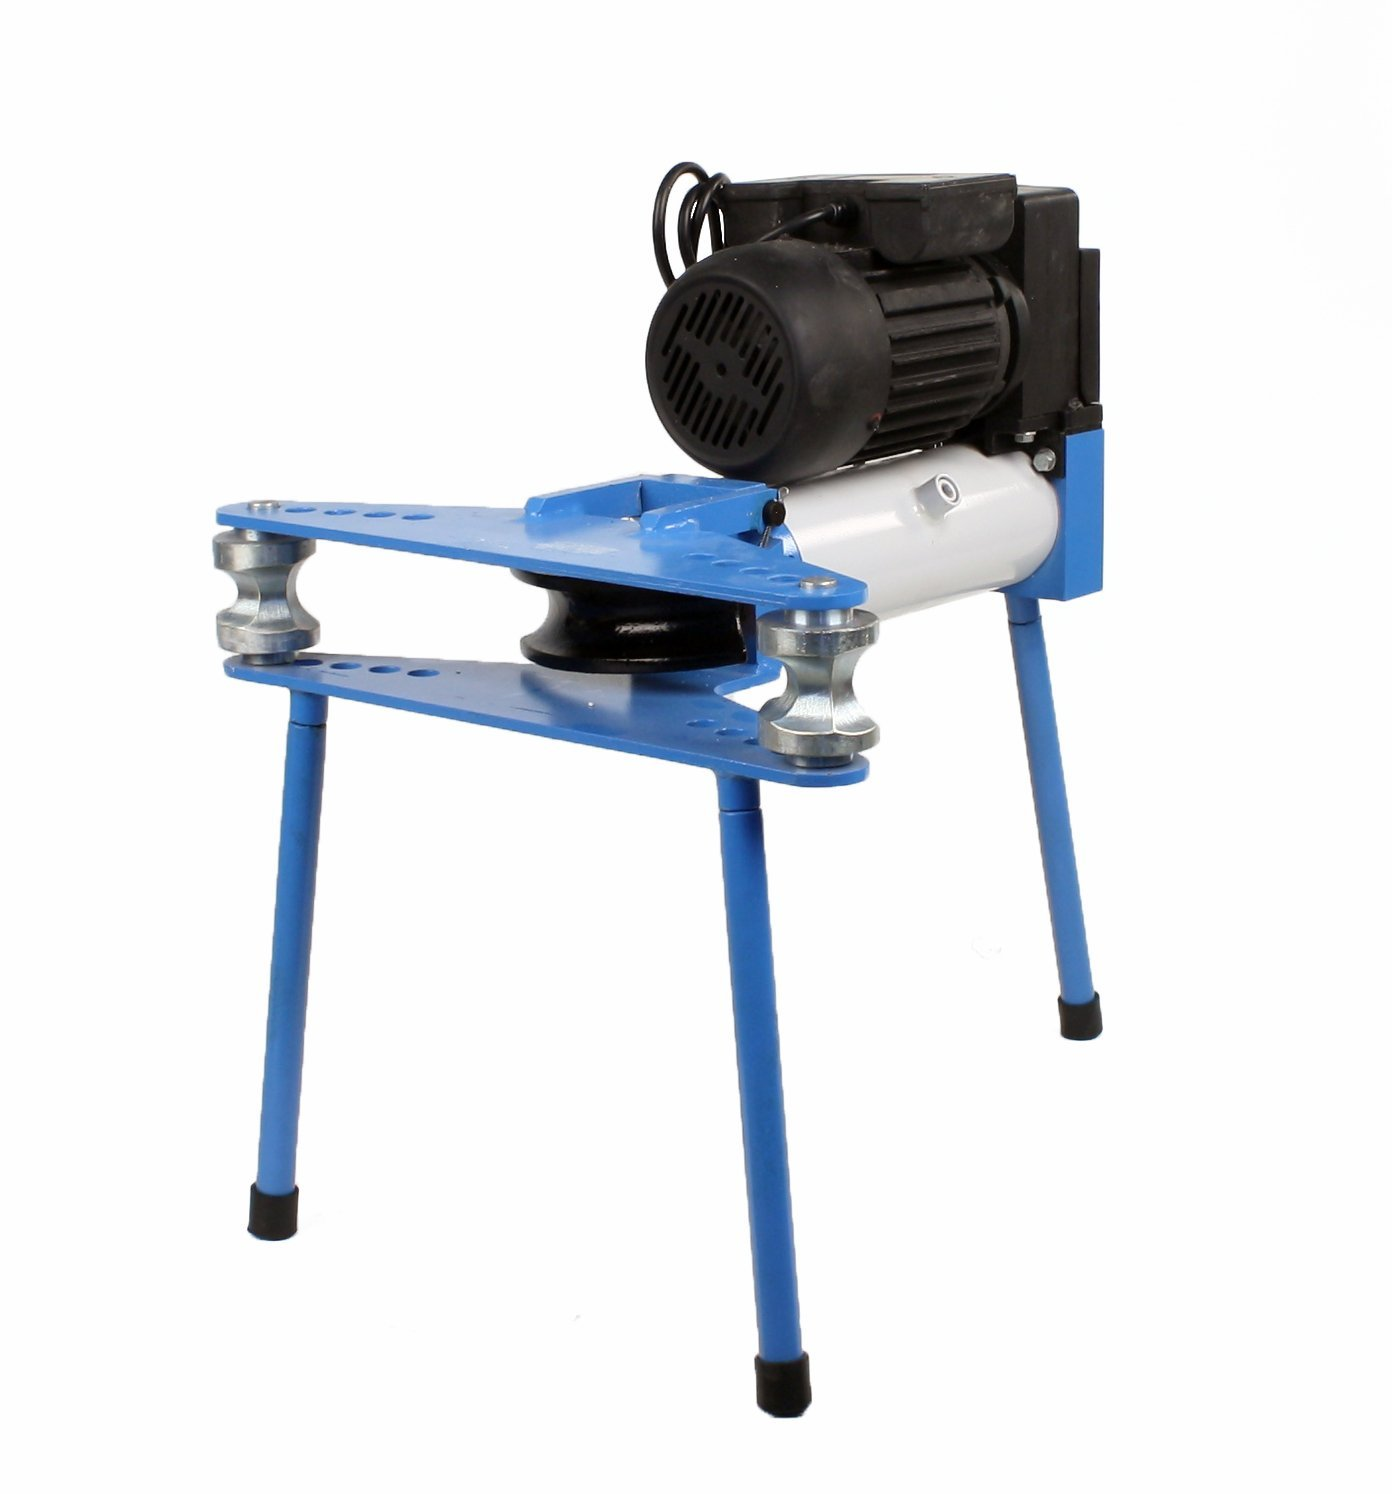 Erie Tools Electric 10-Ton Hydraulic Pipe Tube Bender With Six Bending Dies 1/2''-2'' And 110 V Motor by Erie Tools